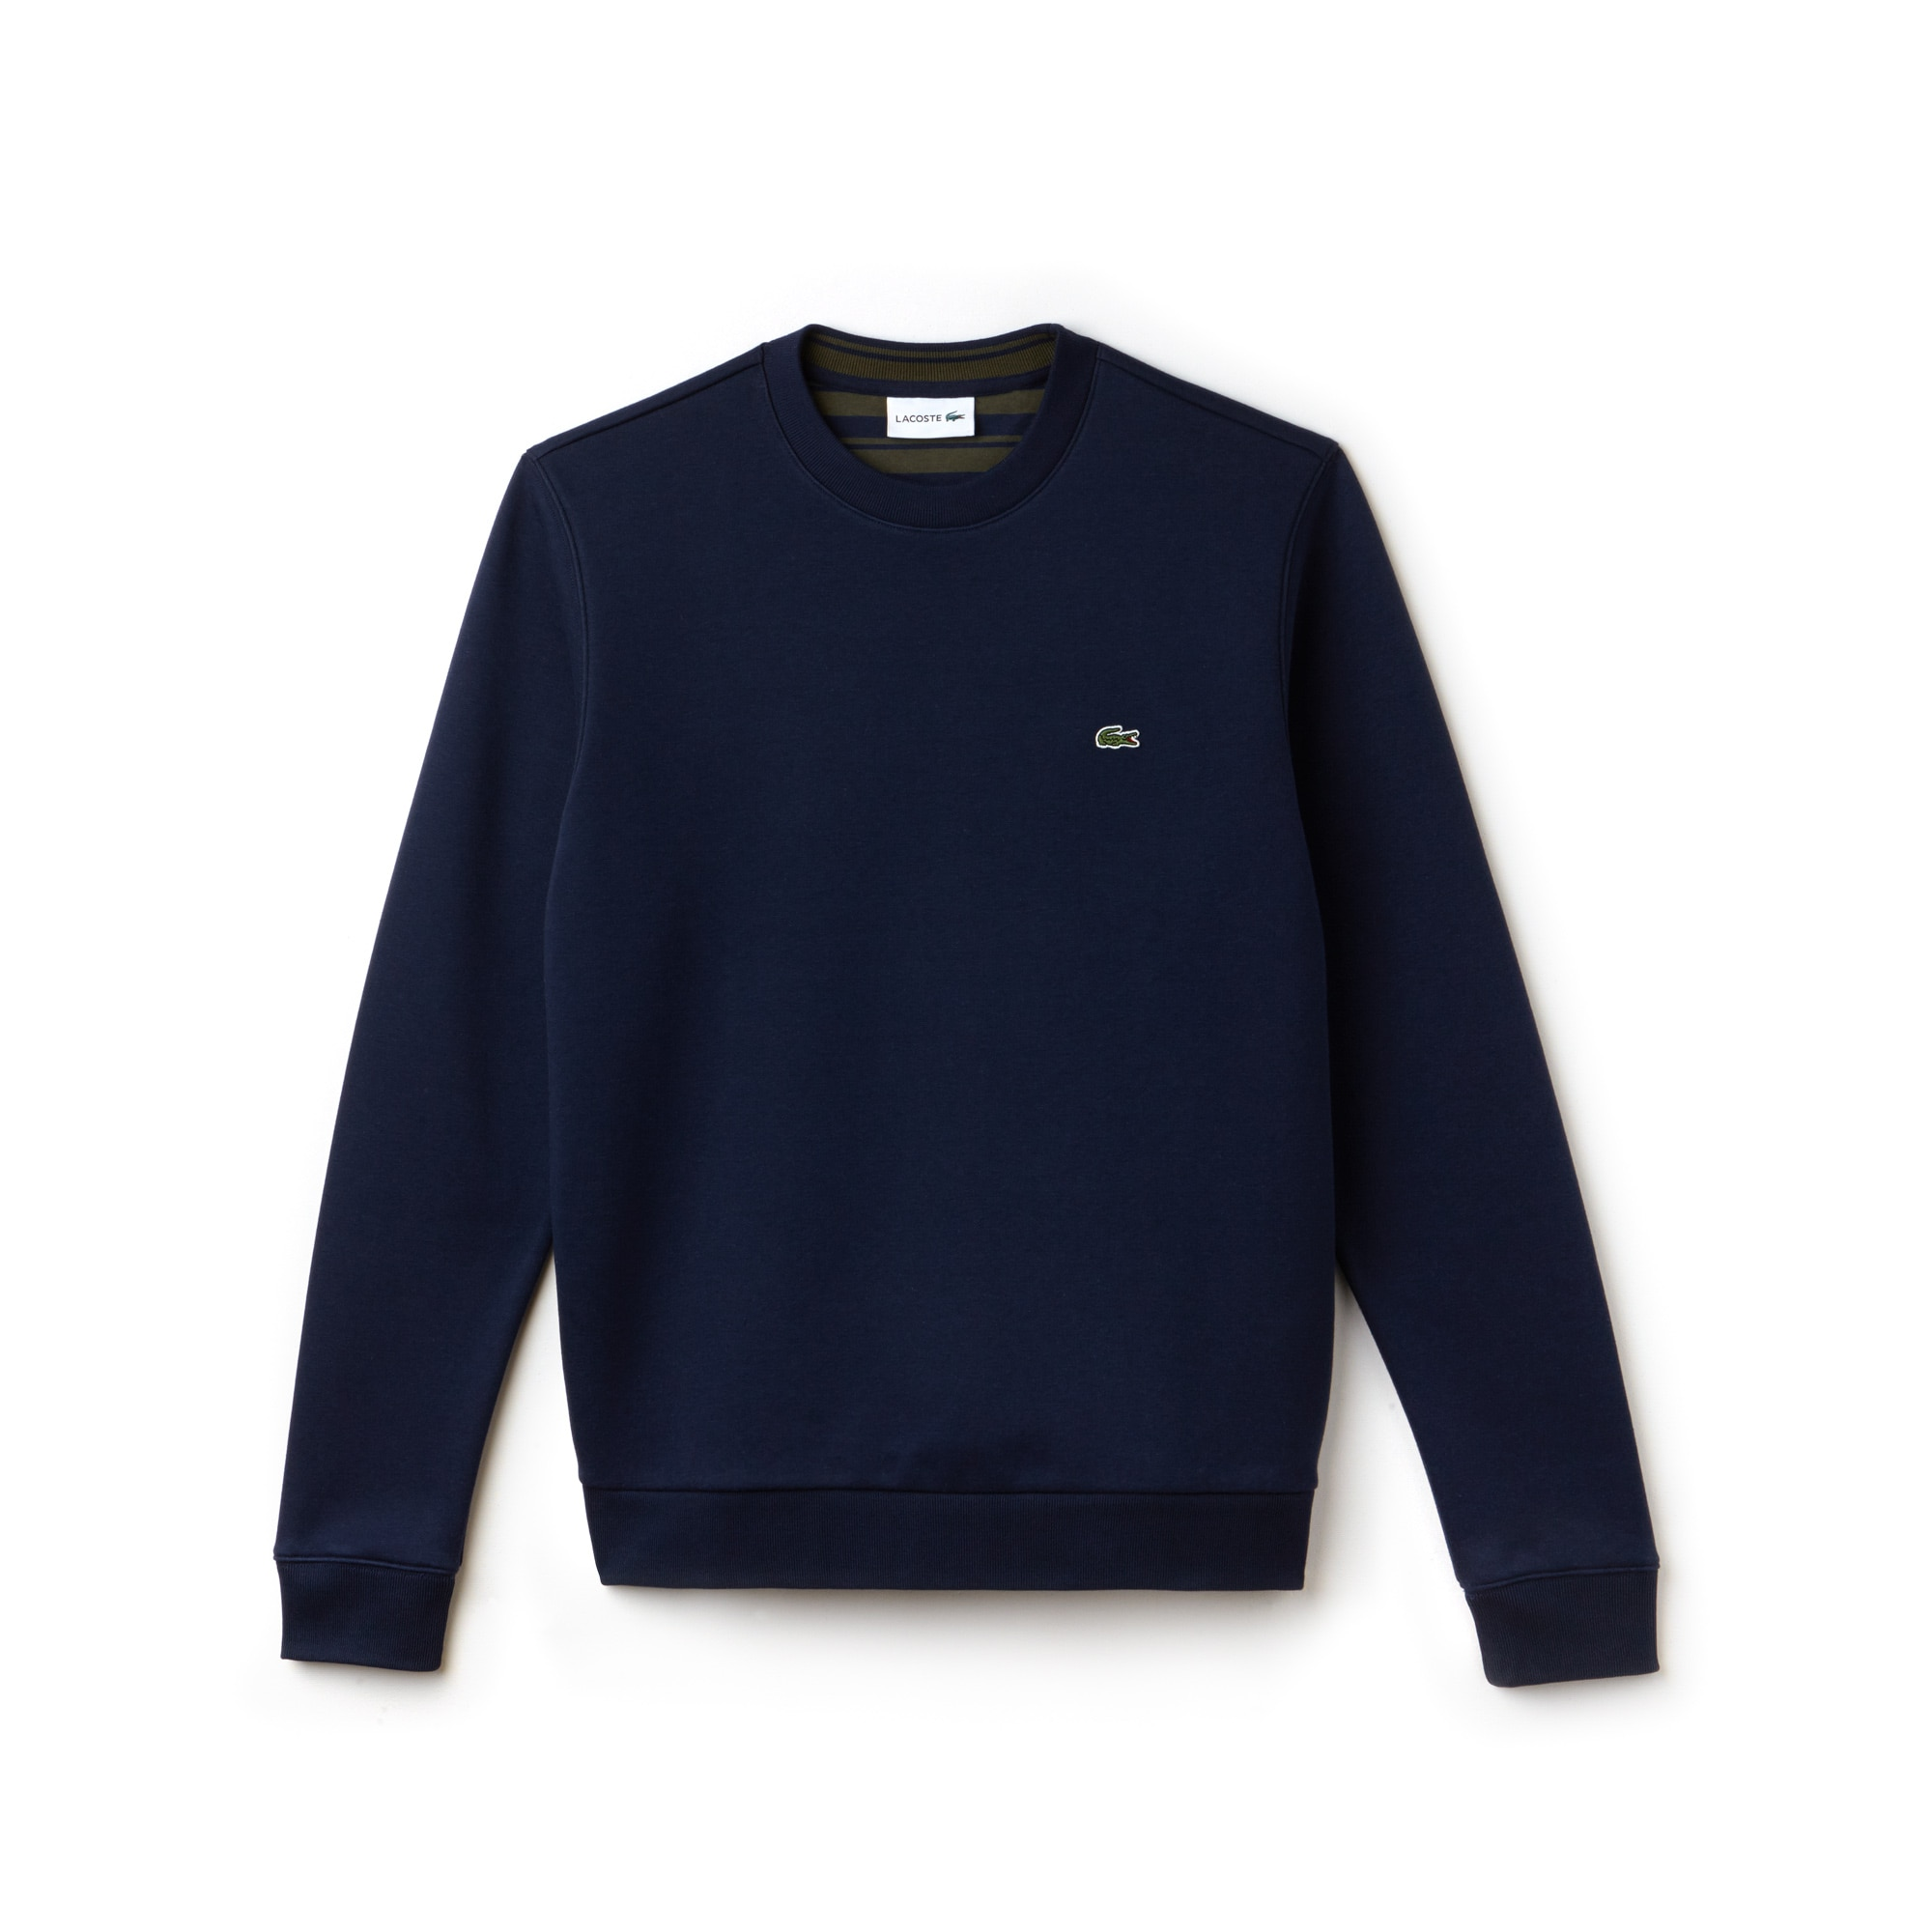 Men's Crew Neck Cotton Fleece Sweatshirt